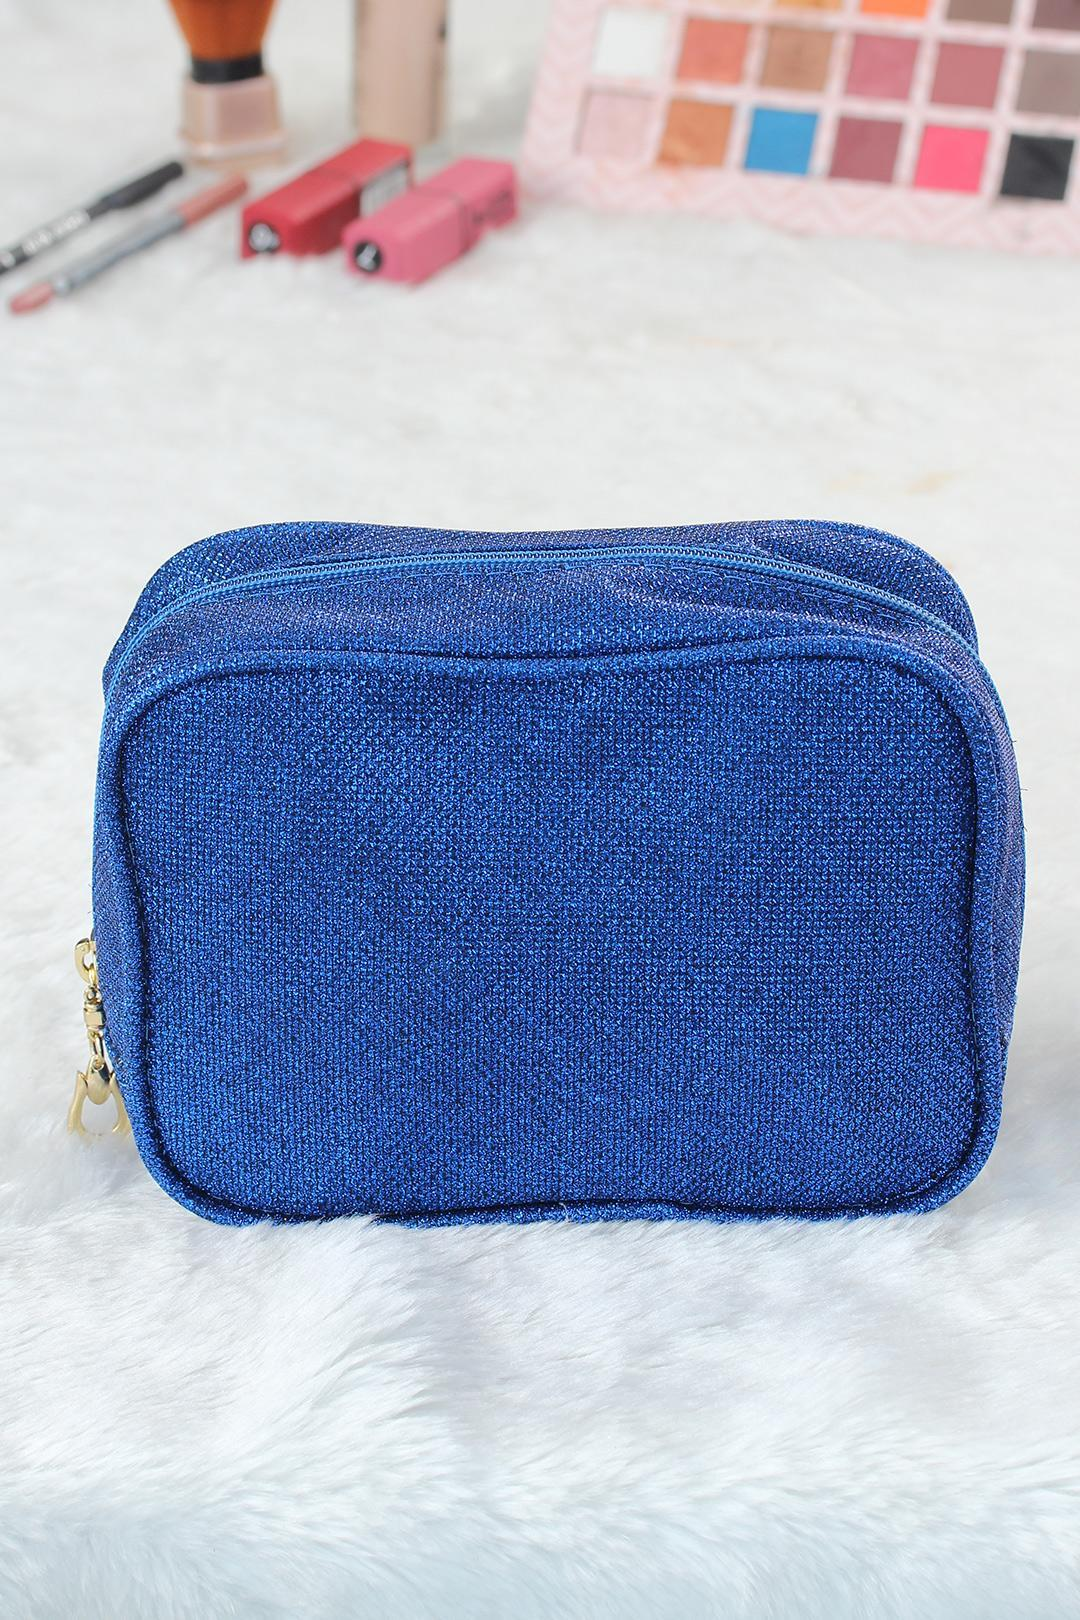 Women's Glitter Blue Square Makeup Bag